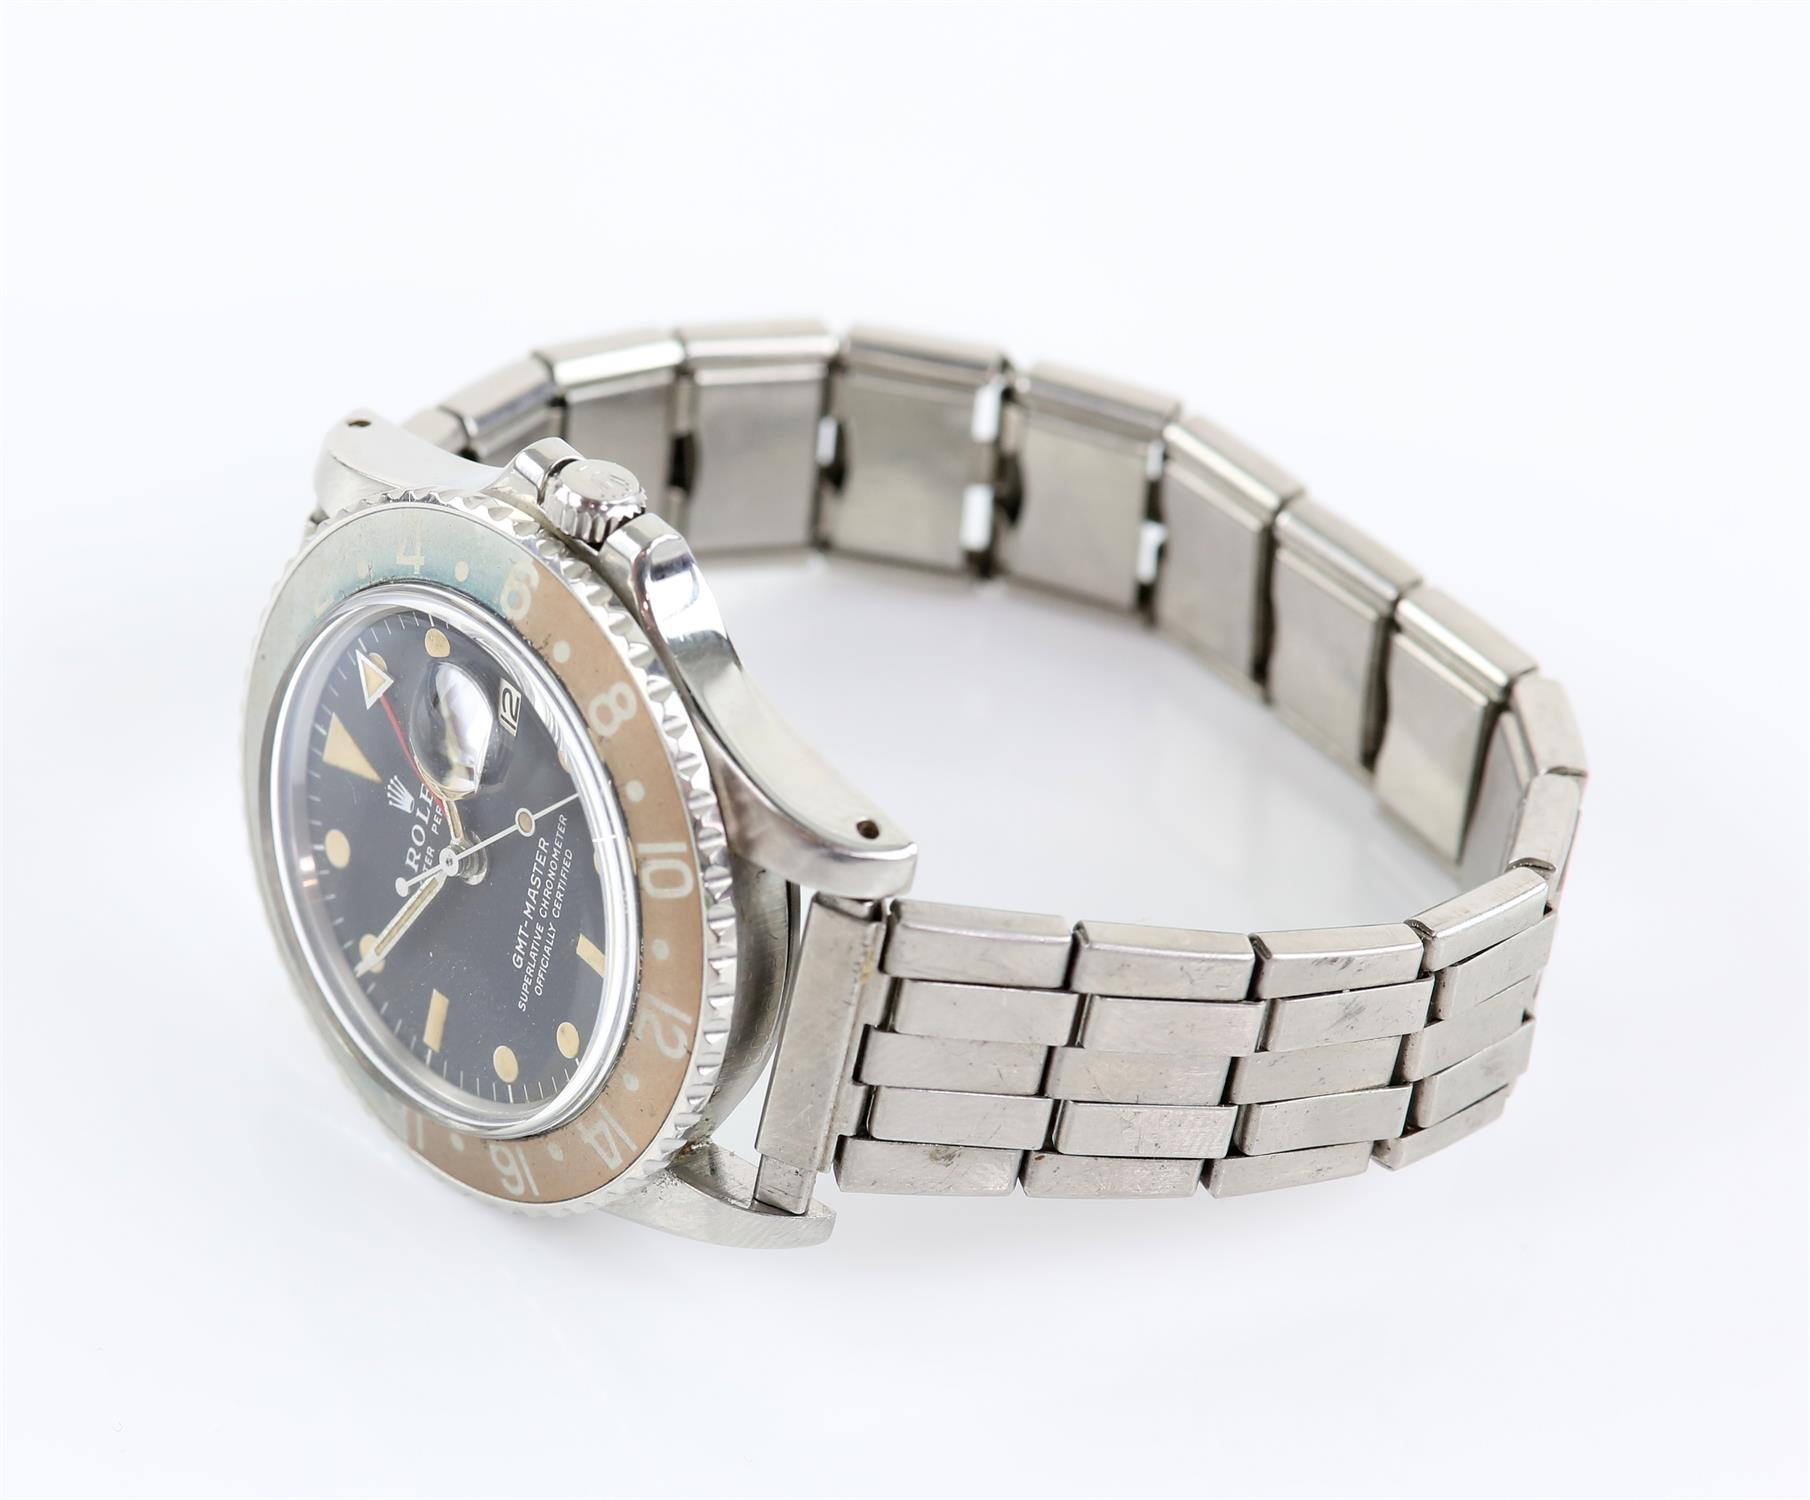 Rolex A gentleman's reference 1675 stainless steel GMT 'ghost dial' wristwatch, the signed dial - Image 3 of 4